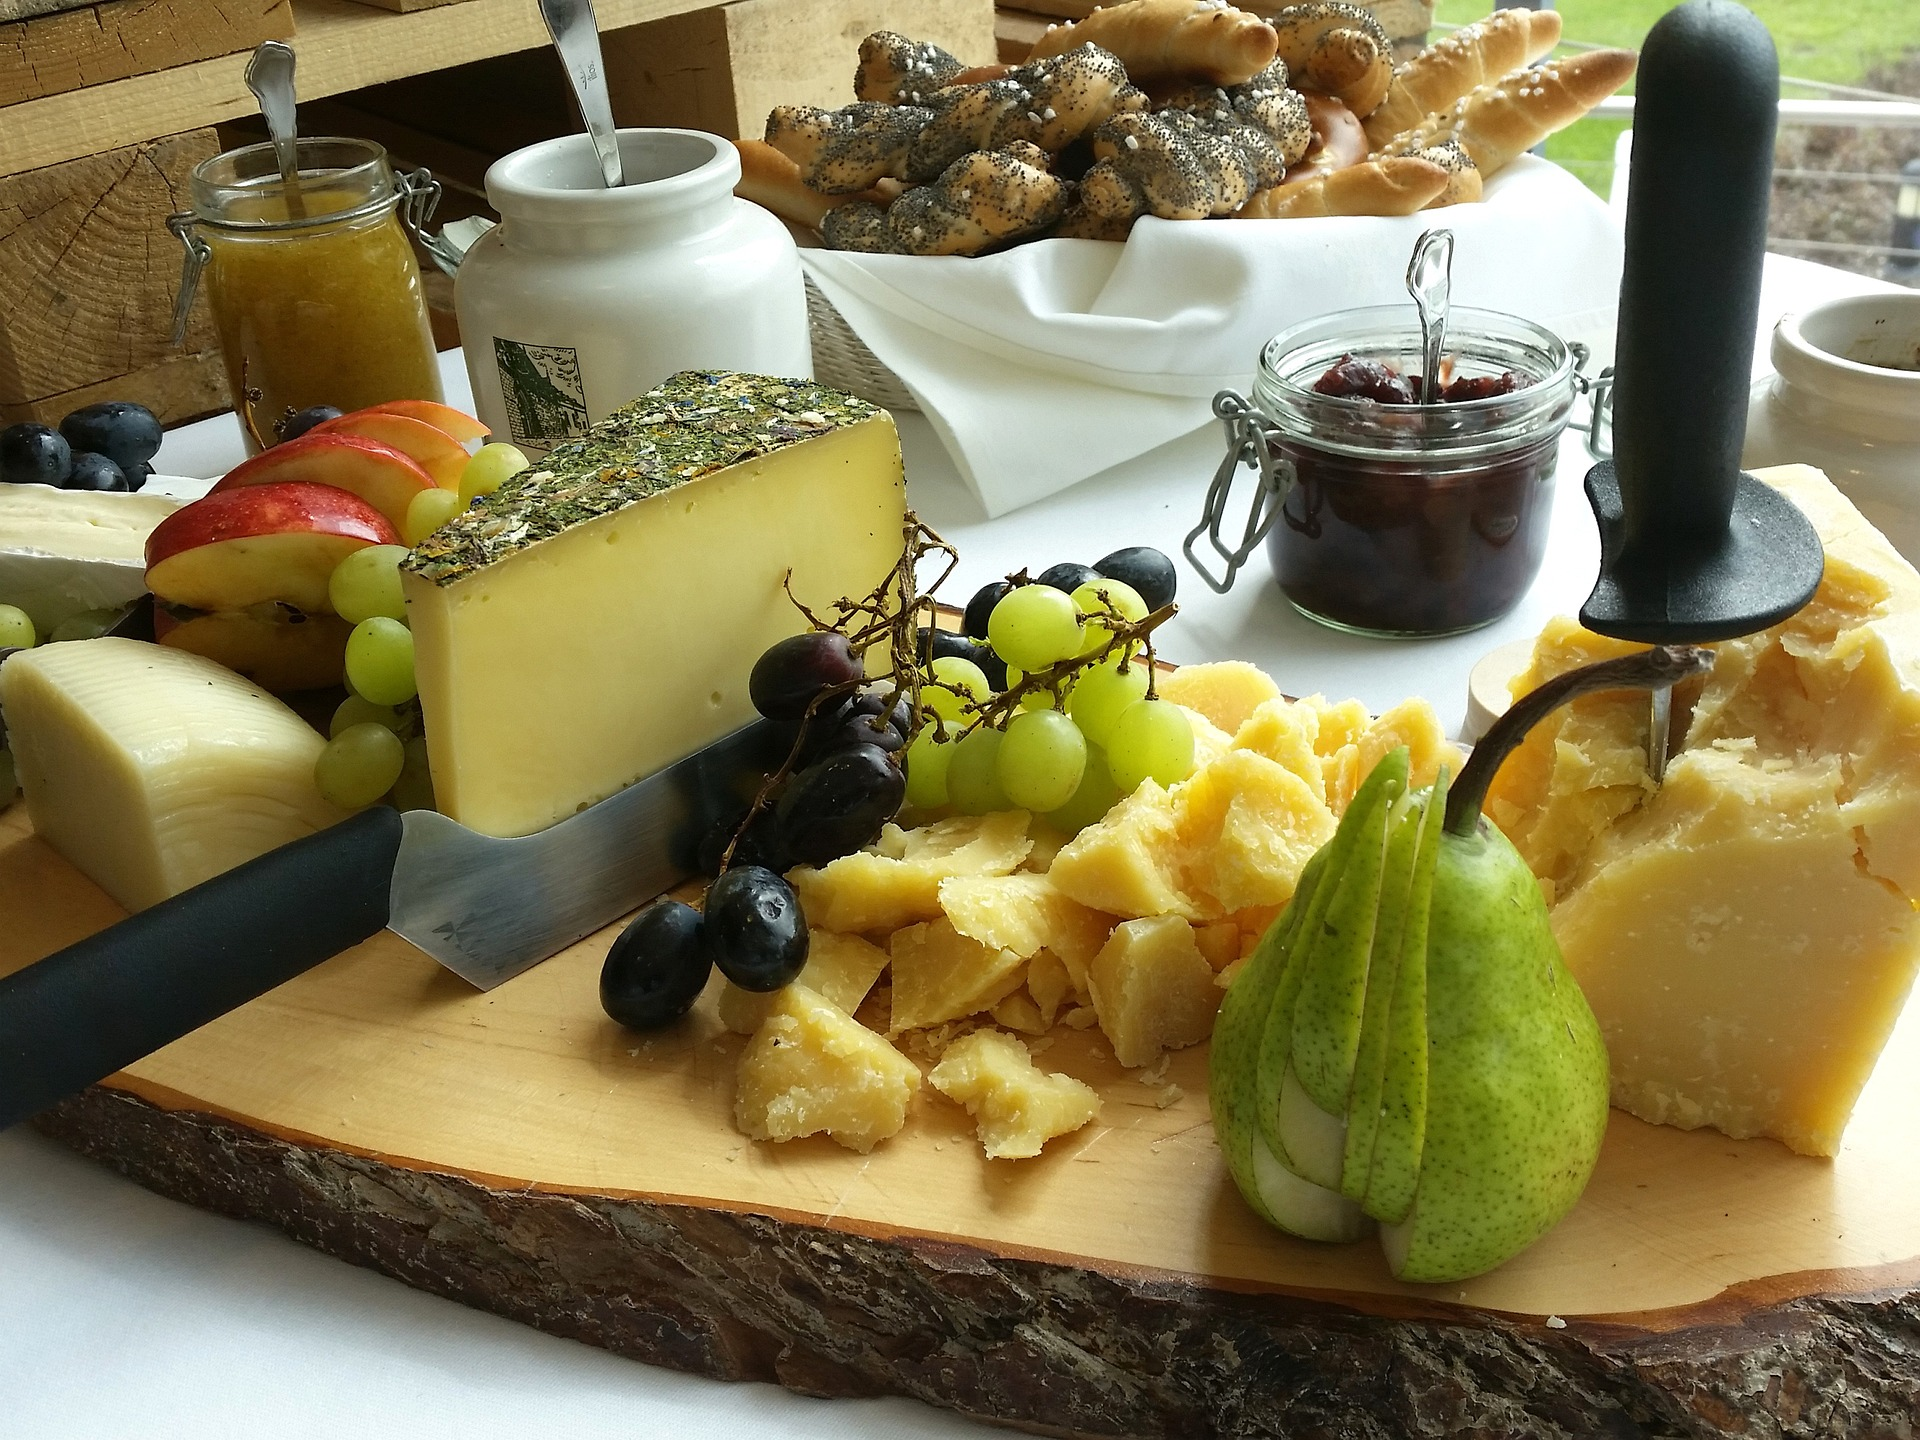 Cheeses, fruits, and jams on a presentation board